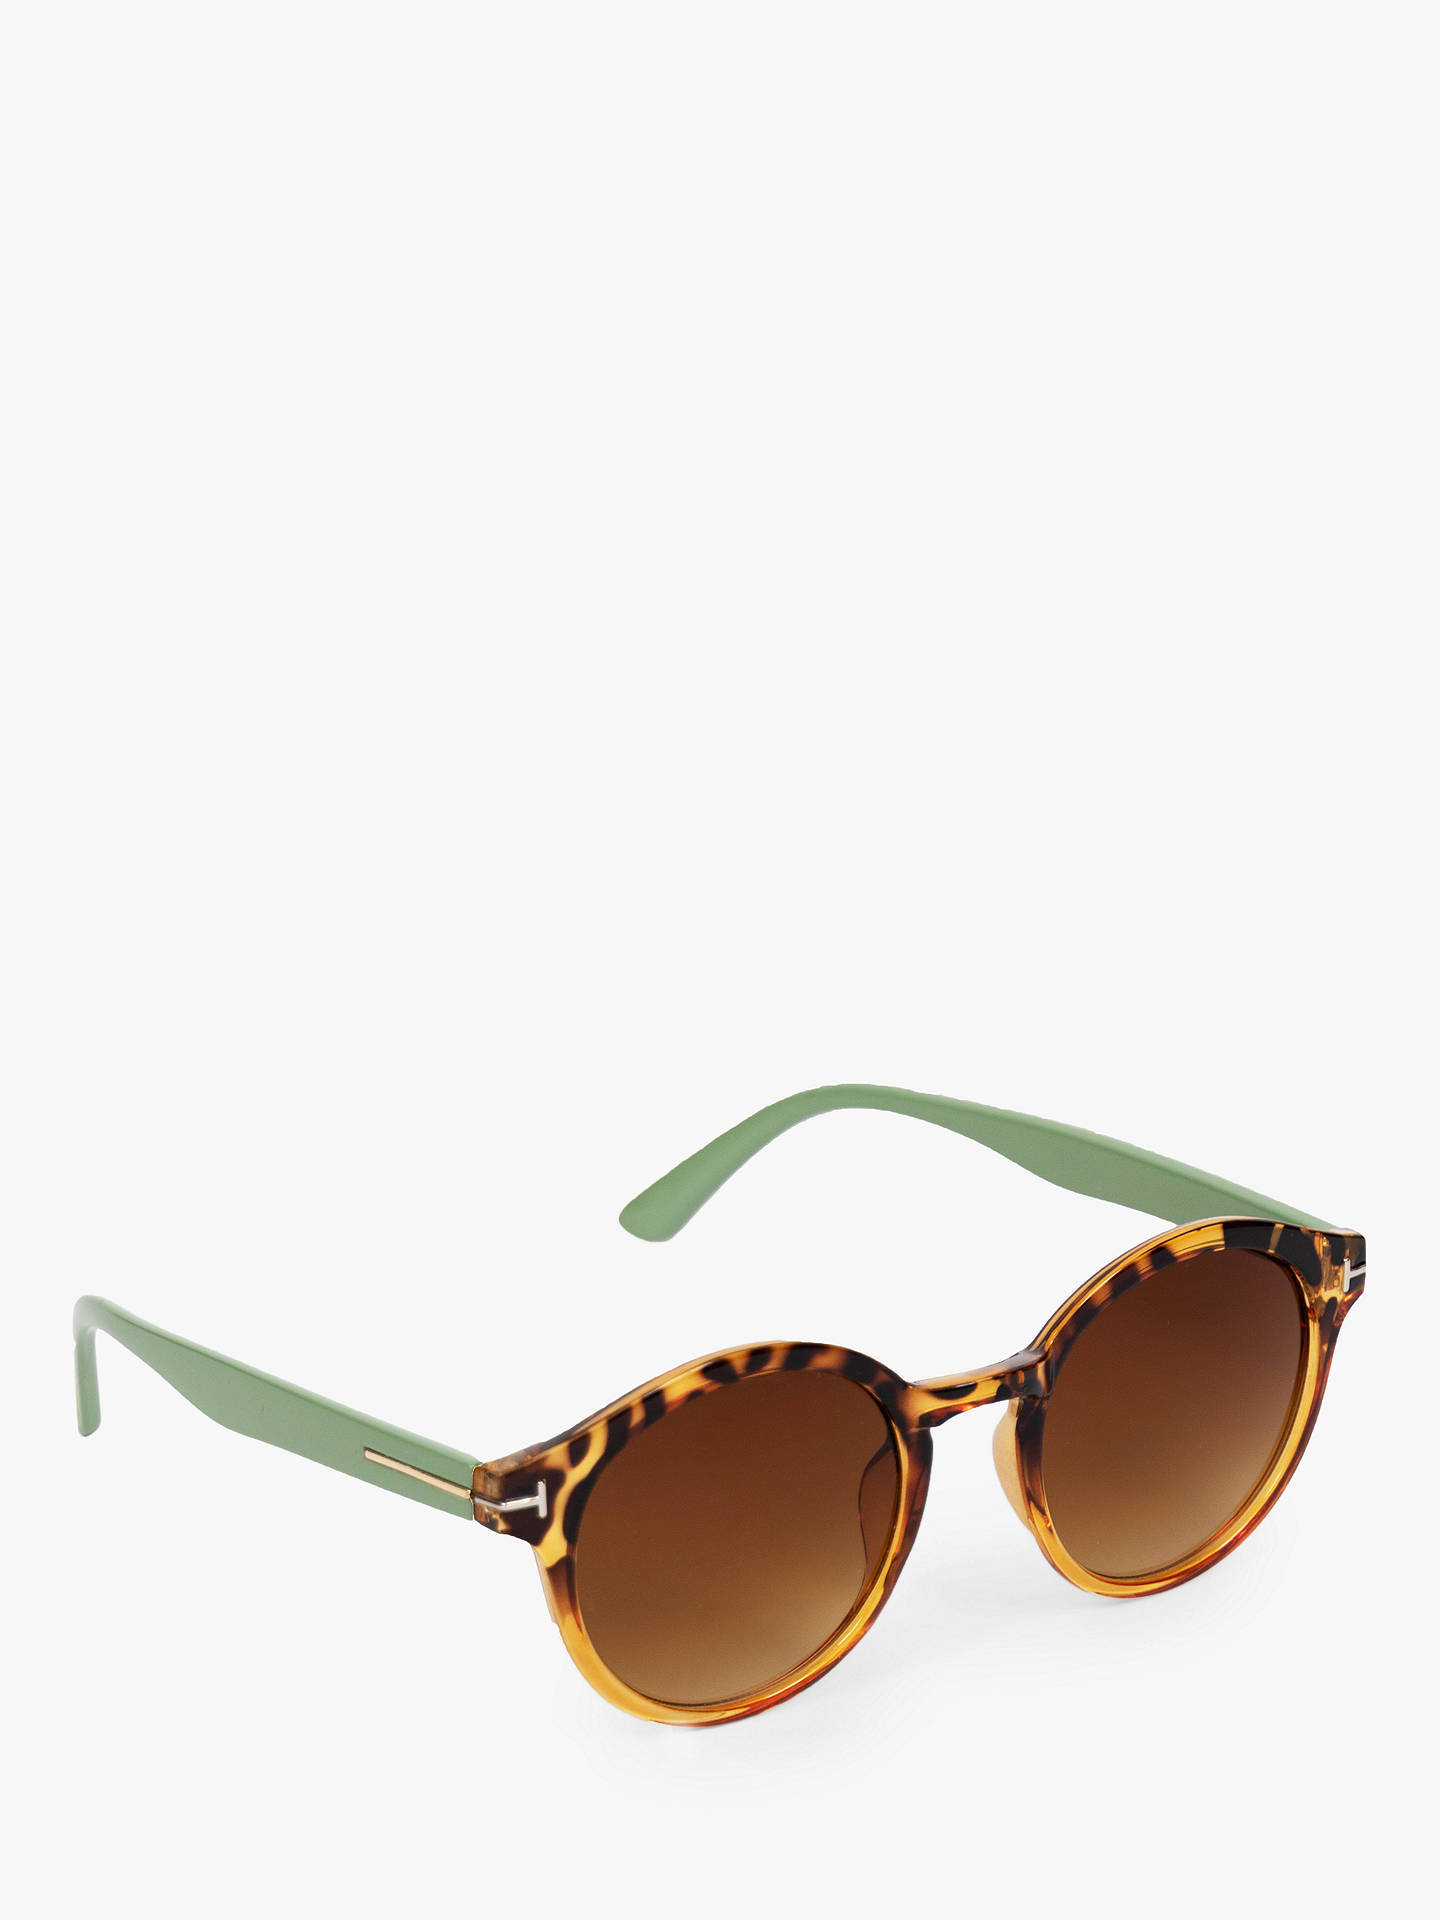 Powder Women's Erin Round Sunglasses, Tortoise Olive/Brown Gradient John lewis & Partners